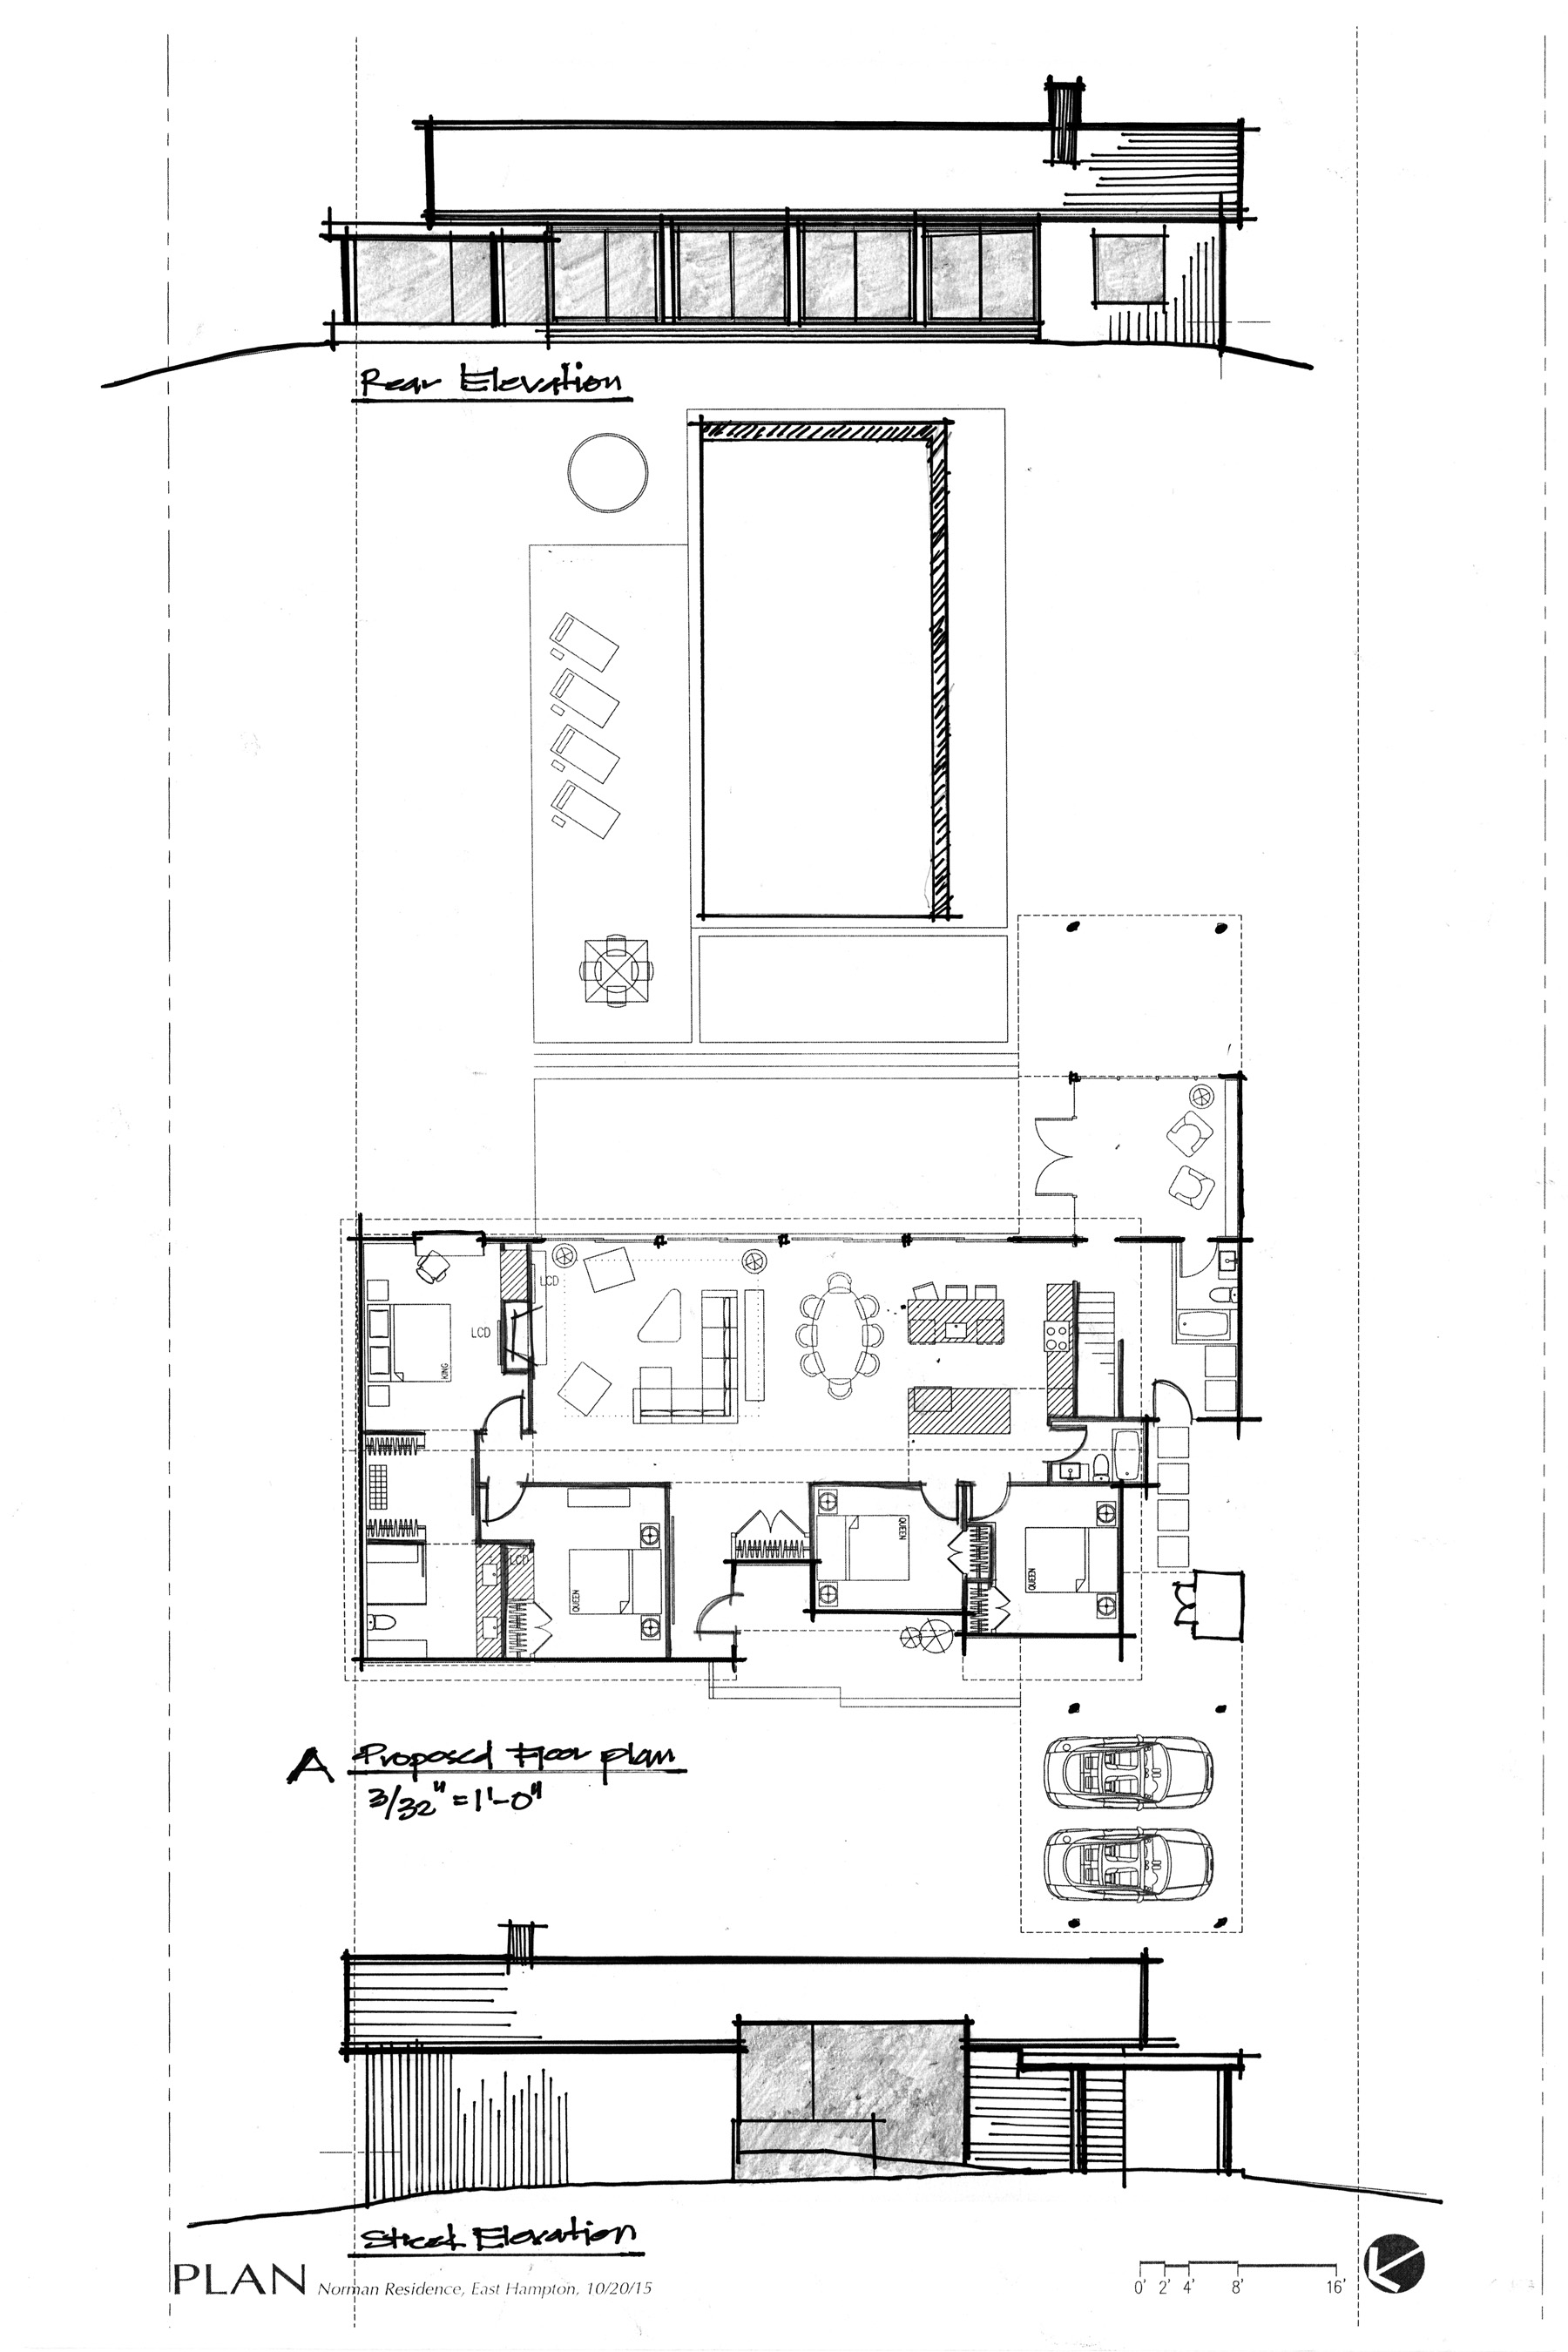 A_Proposed Floor Plan.jpg